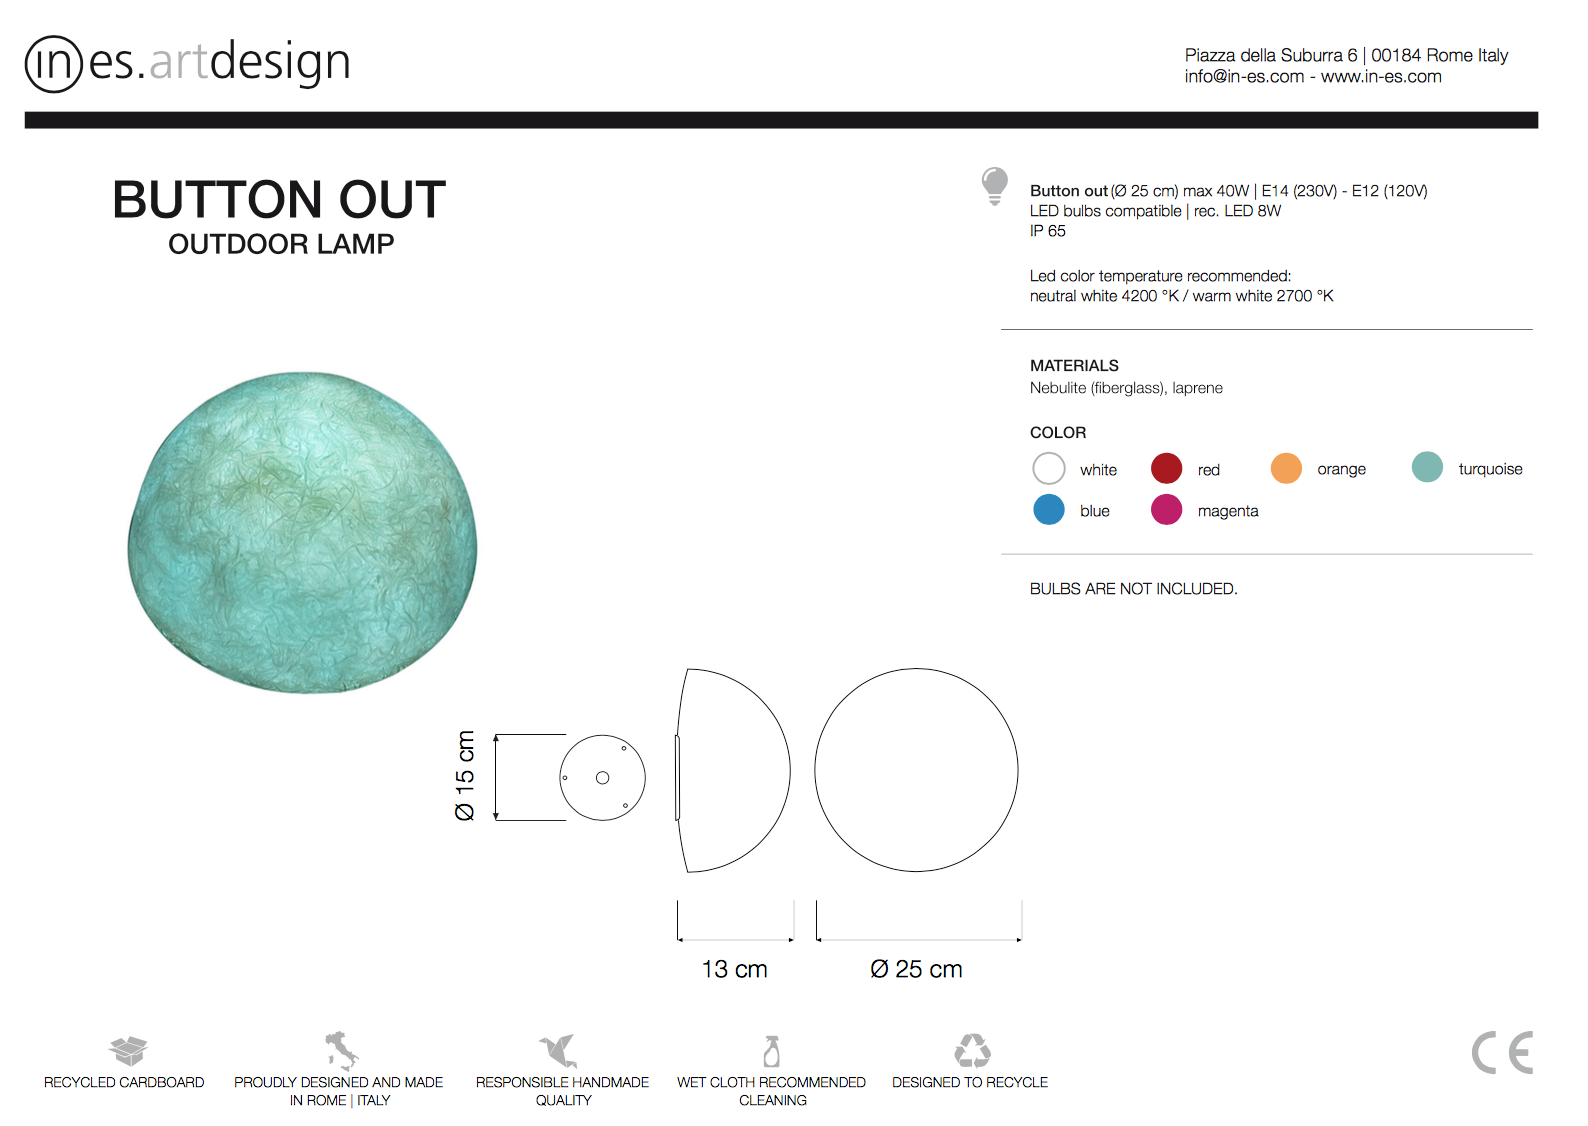 Button Out Wall Light In Es Art Design